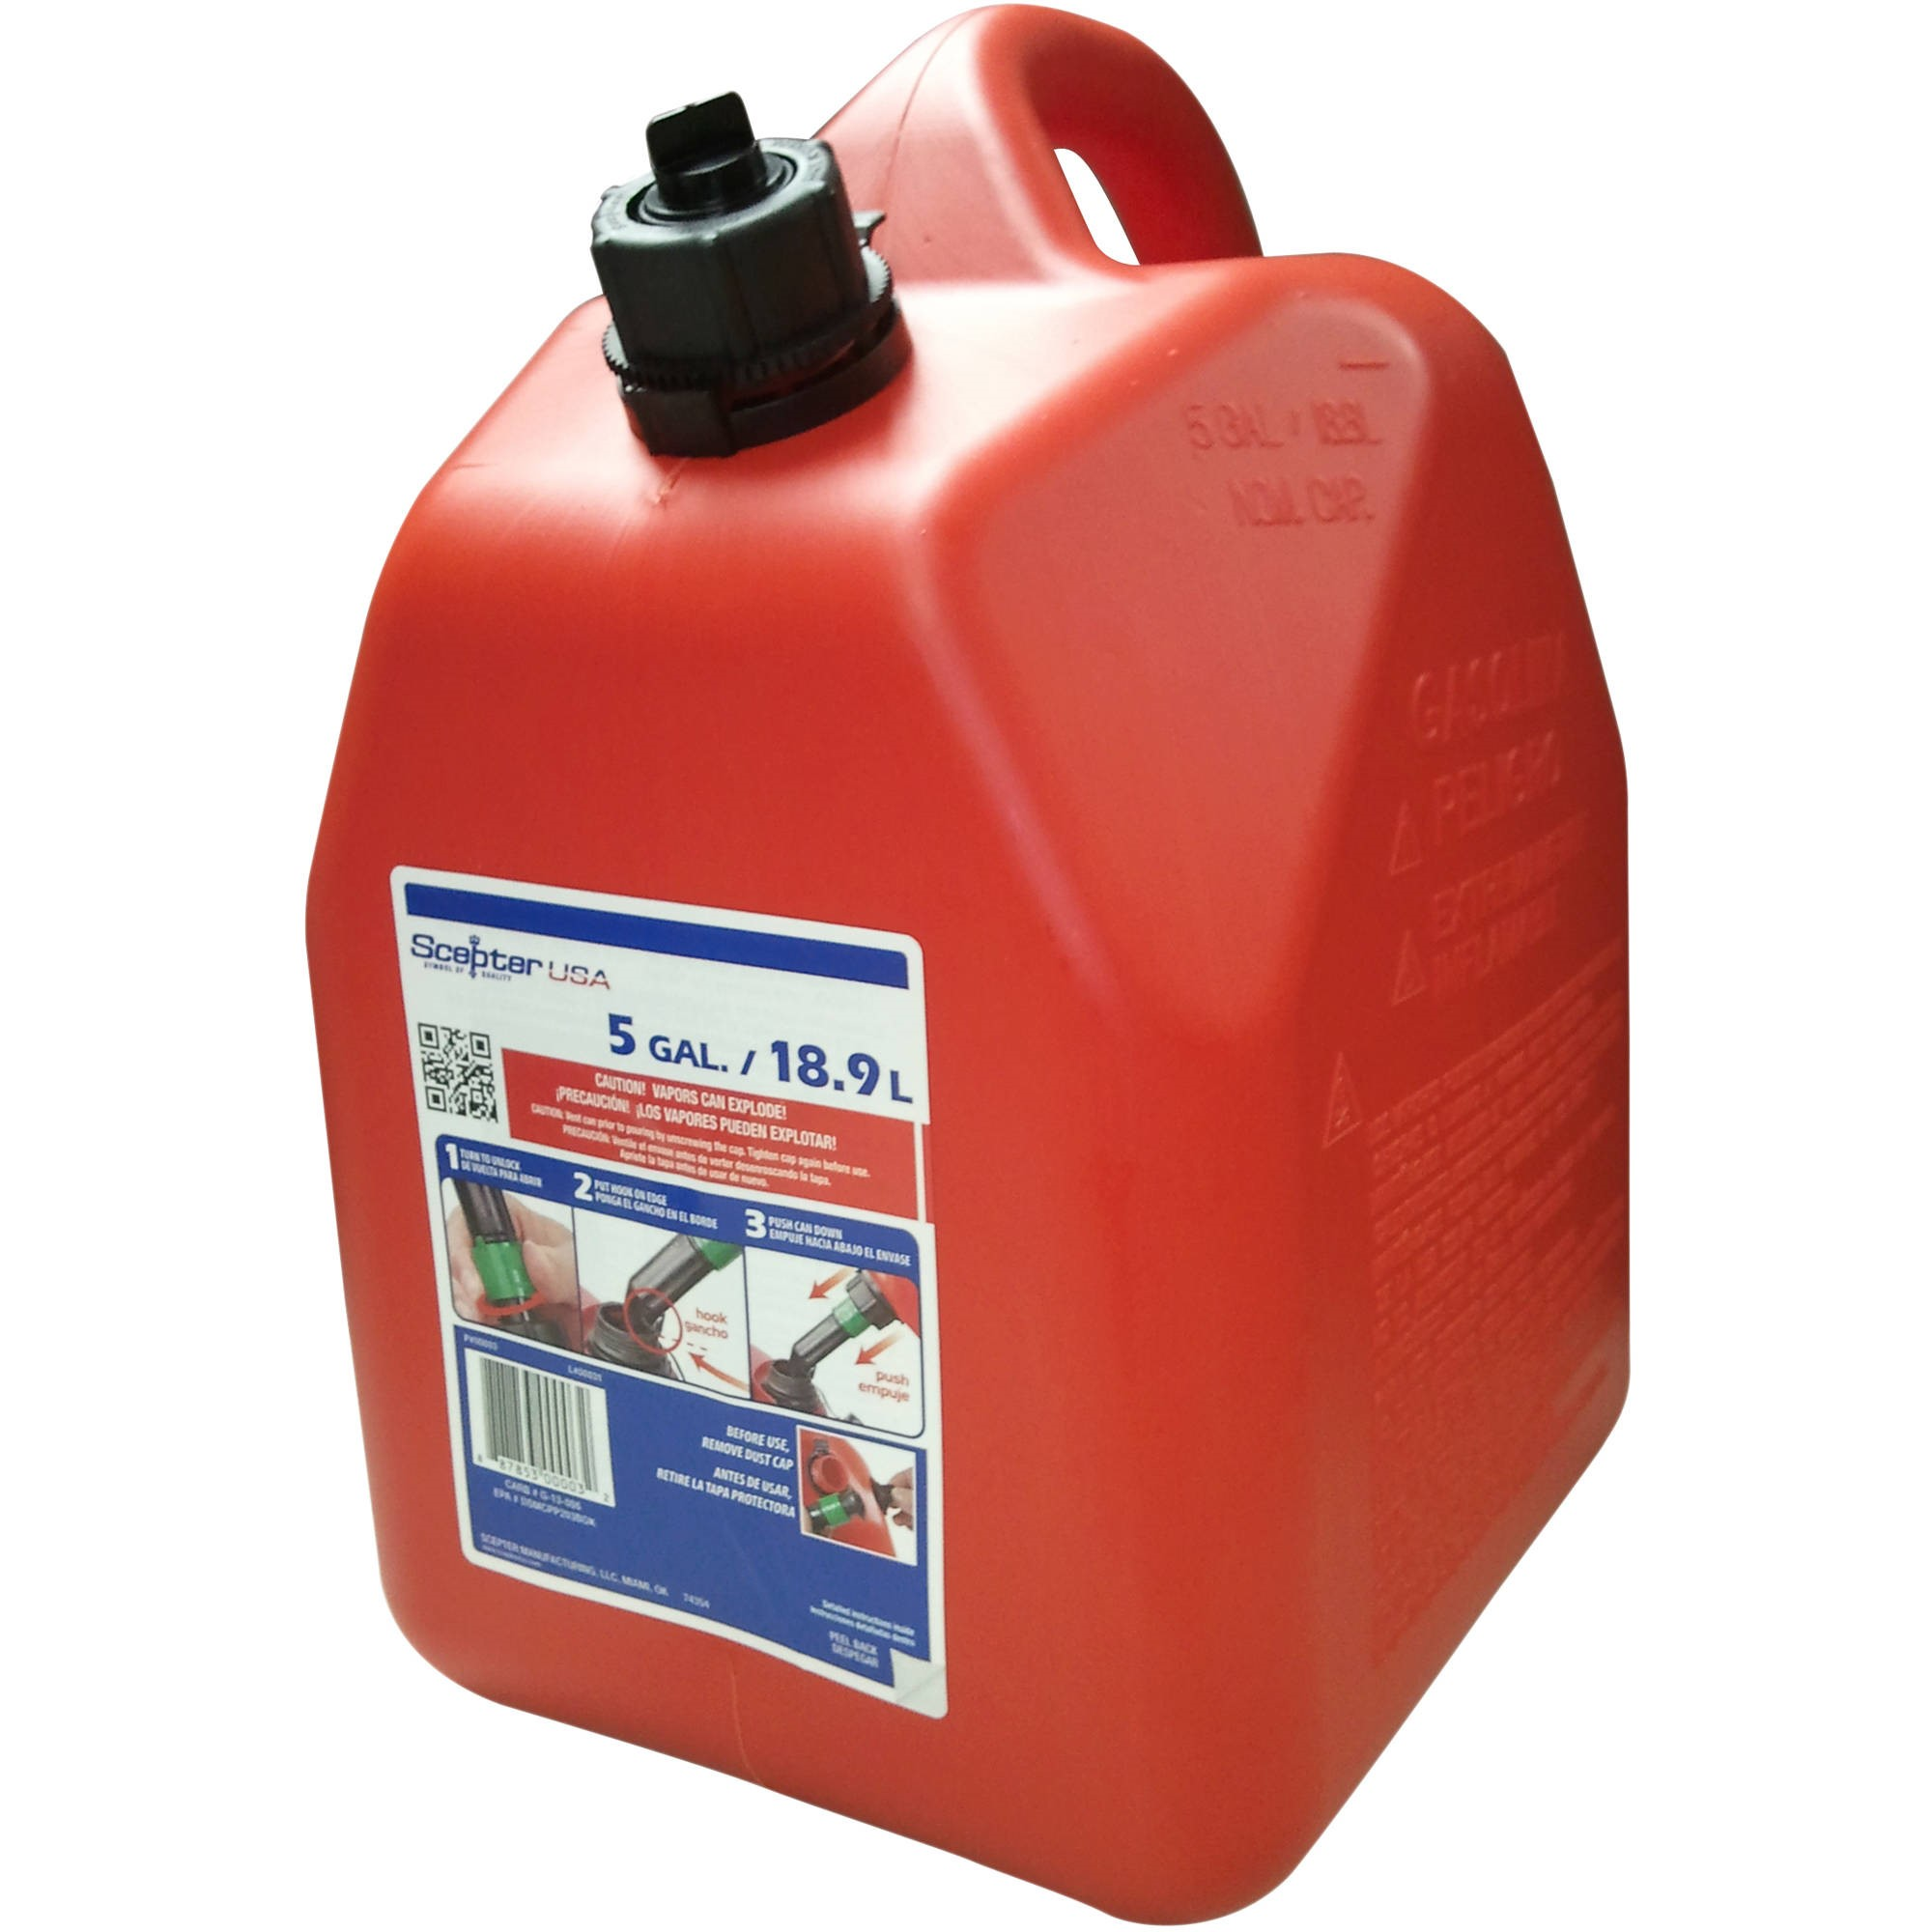 Scepter 5 gal Gas Can, Red